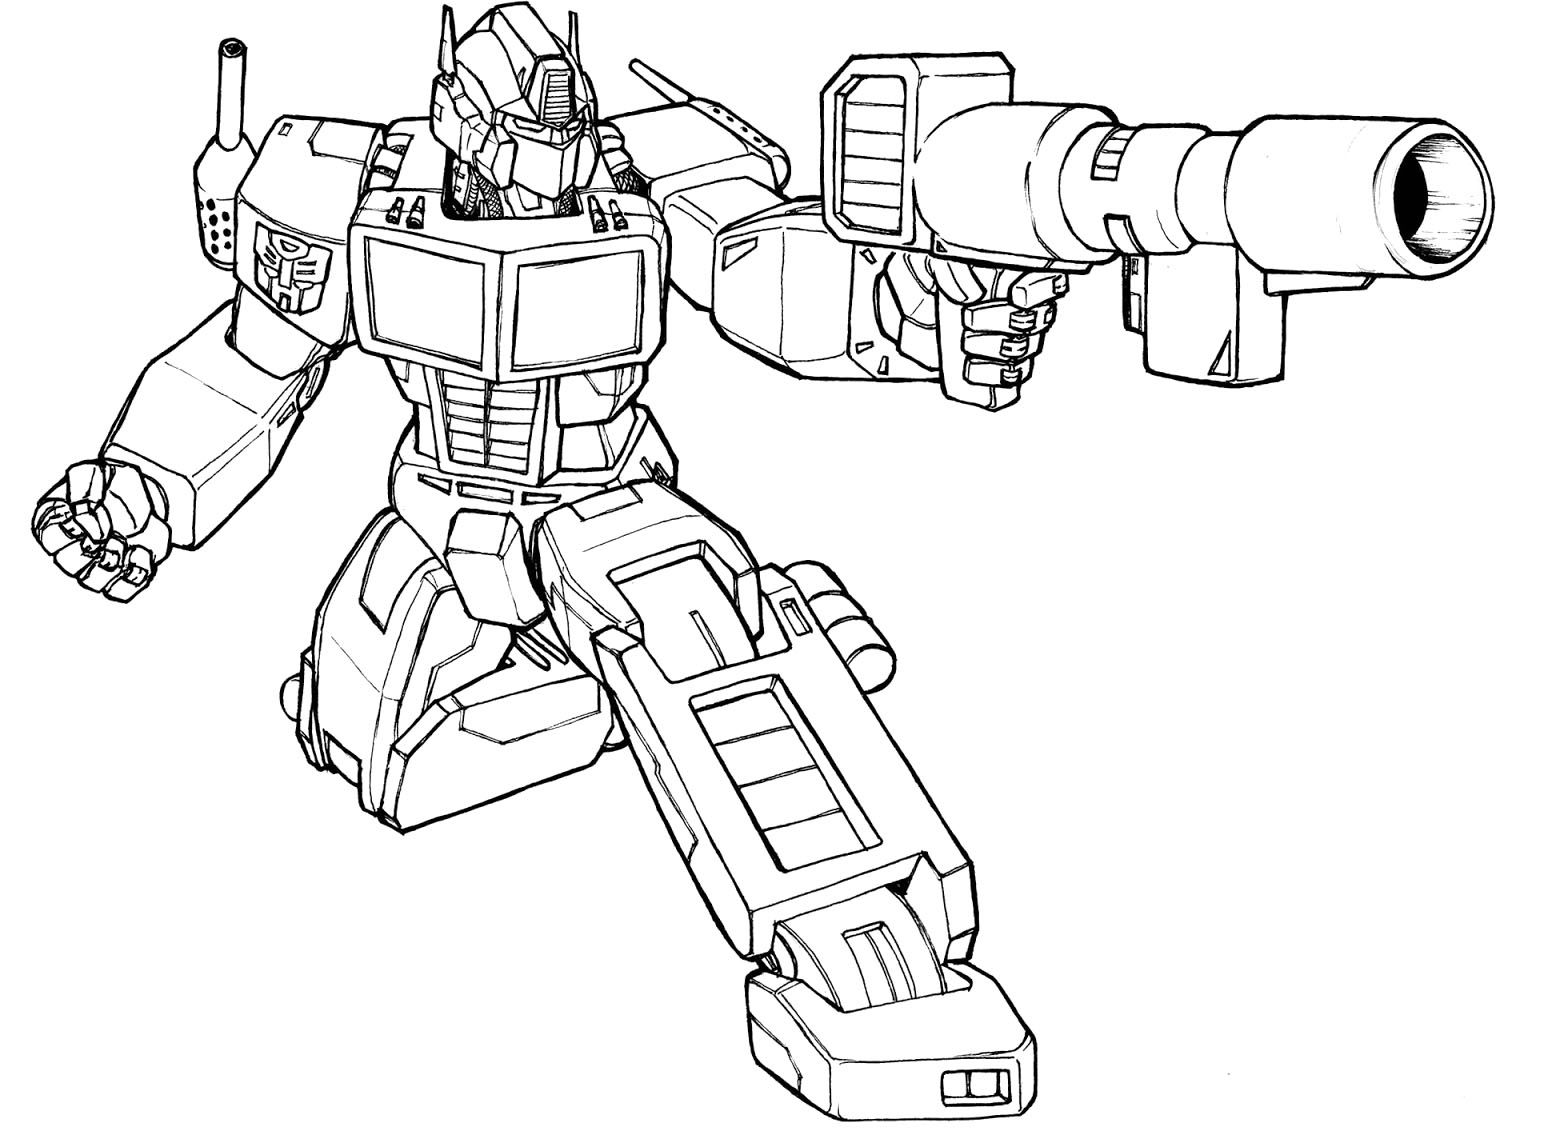 Enemy Shooting Transformers Coloring Pages | printables ...